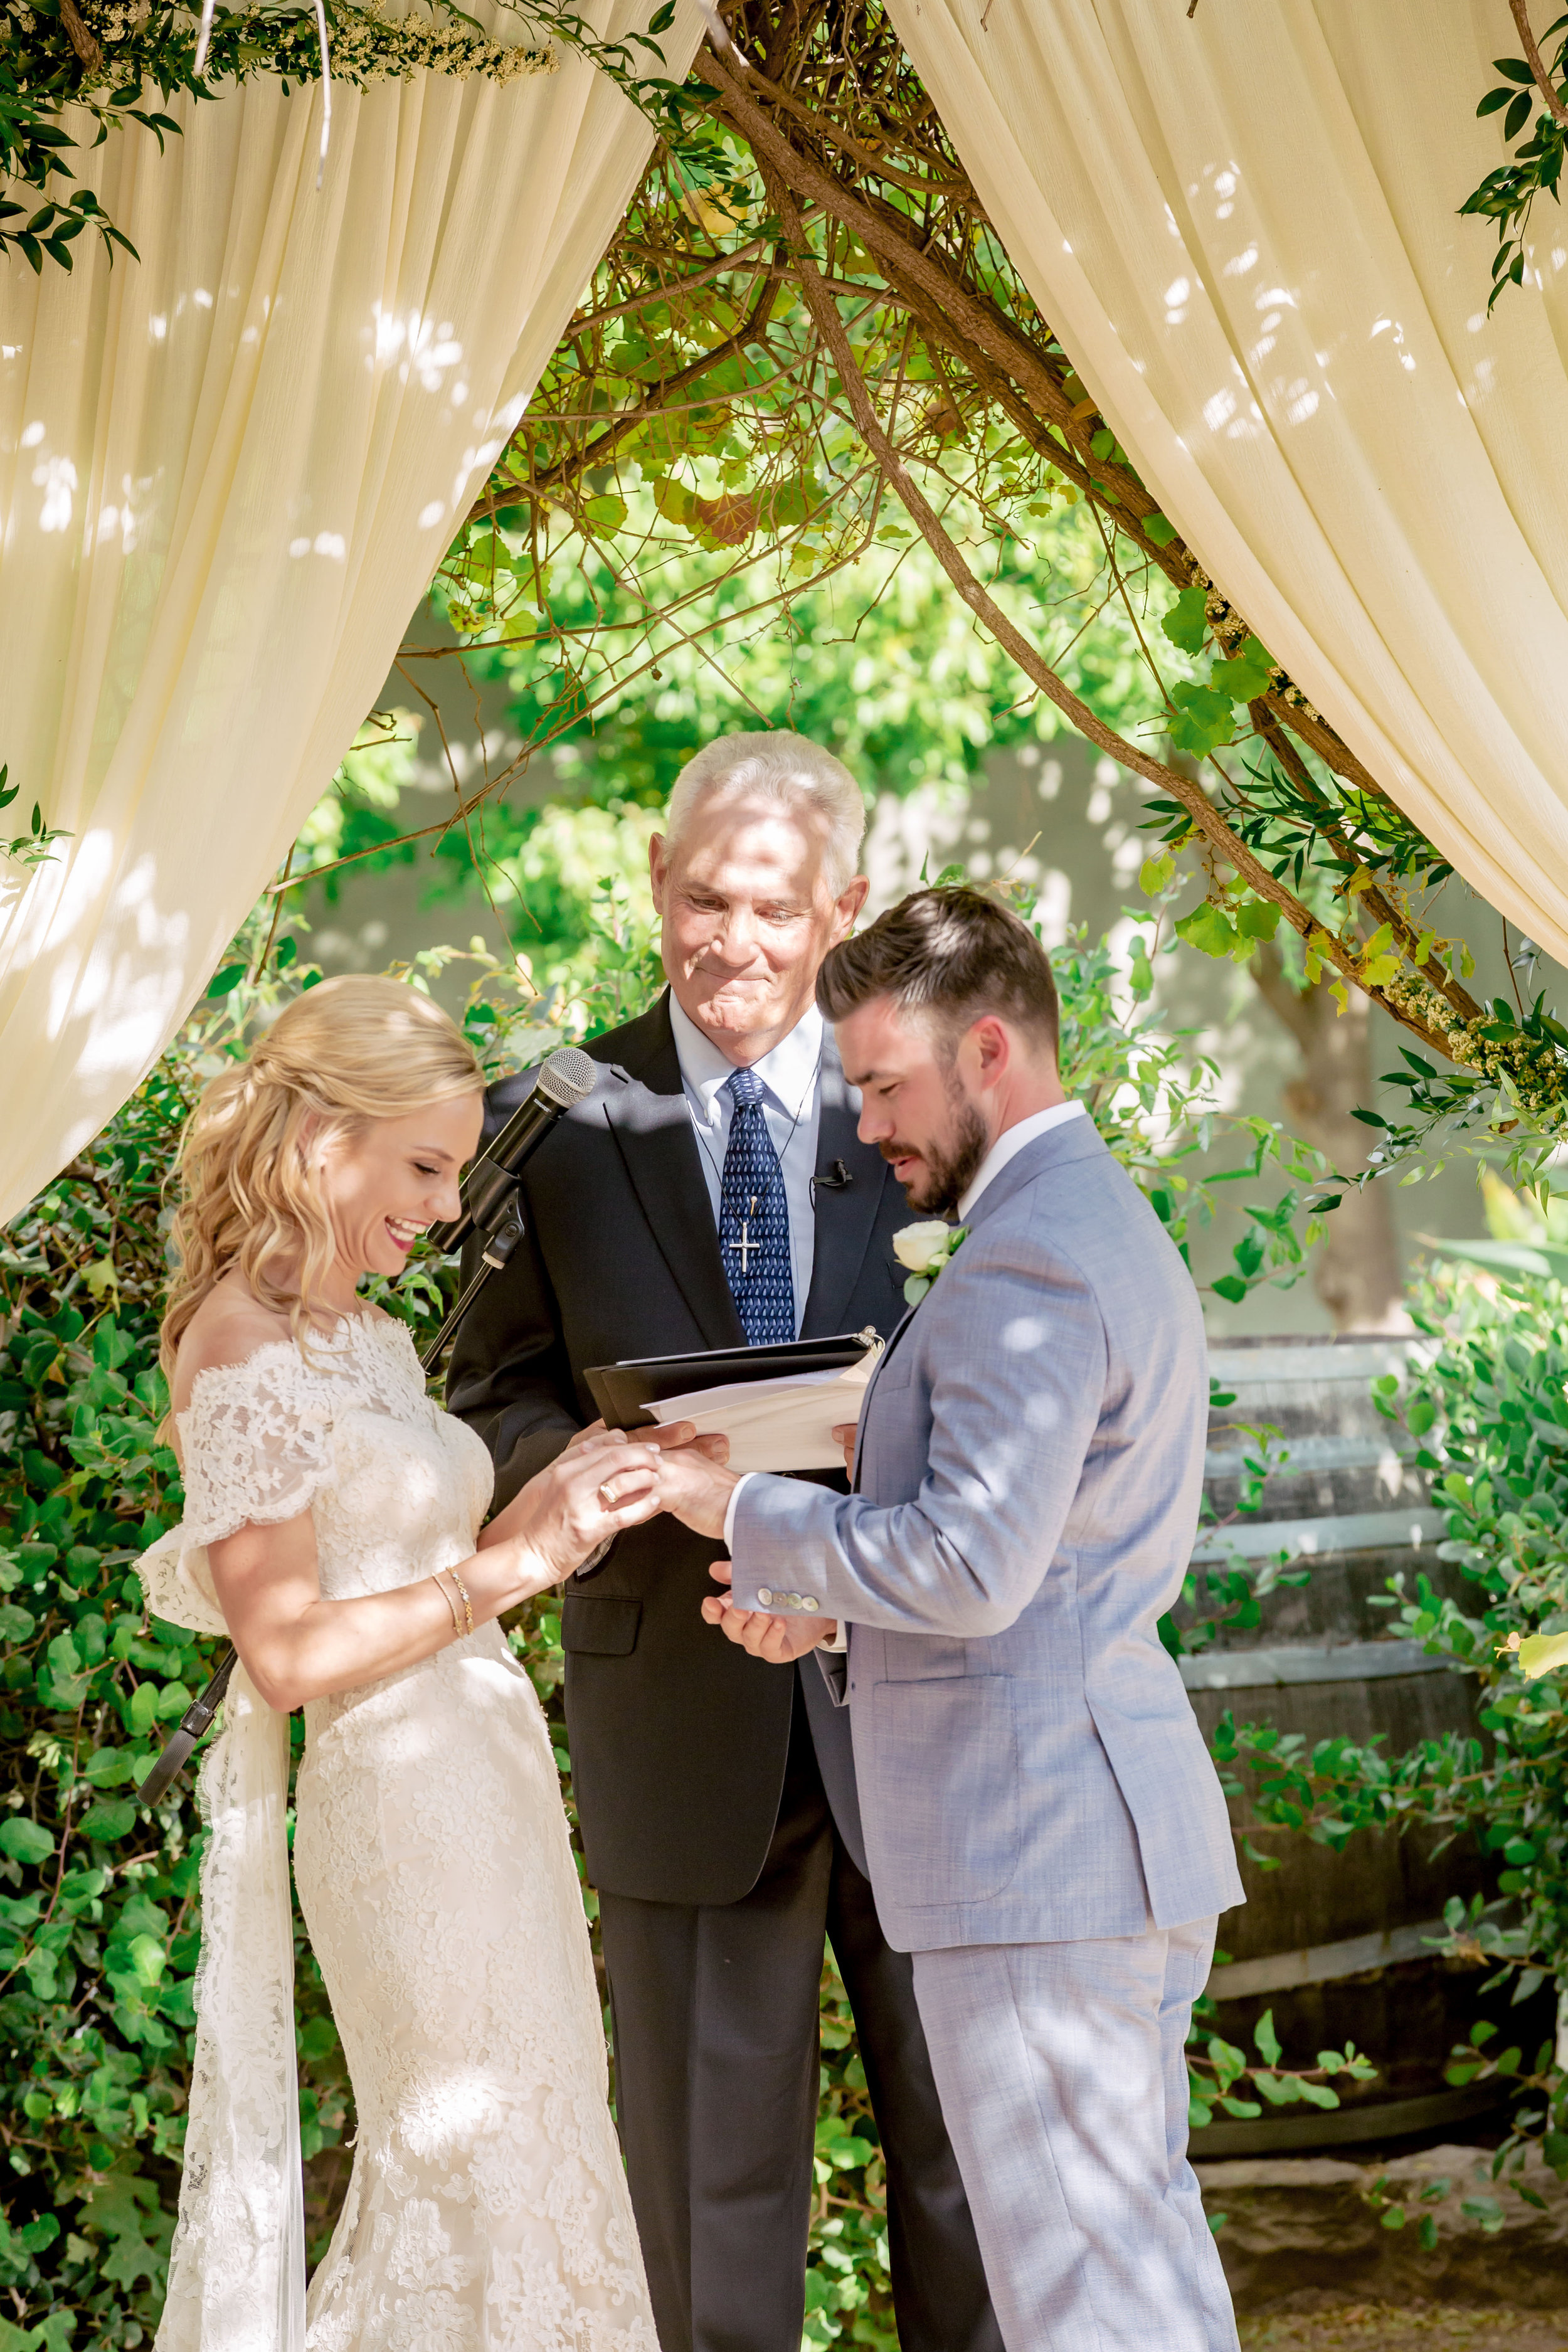 www.santabarbarawedding.com | Rewind Photography | Events by M and M | Santa Barbara Historical Museum | Ceremony | Vows